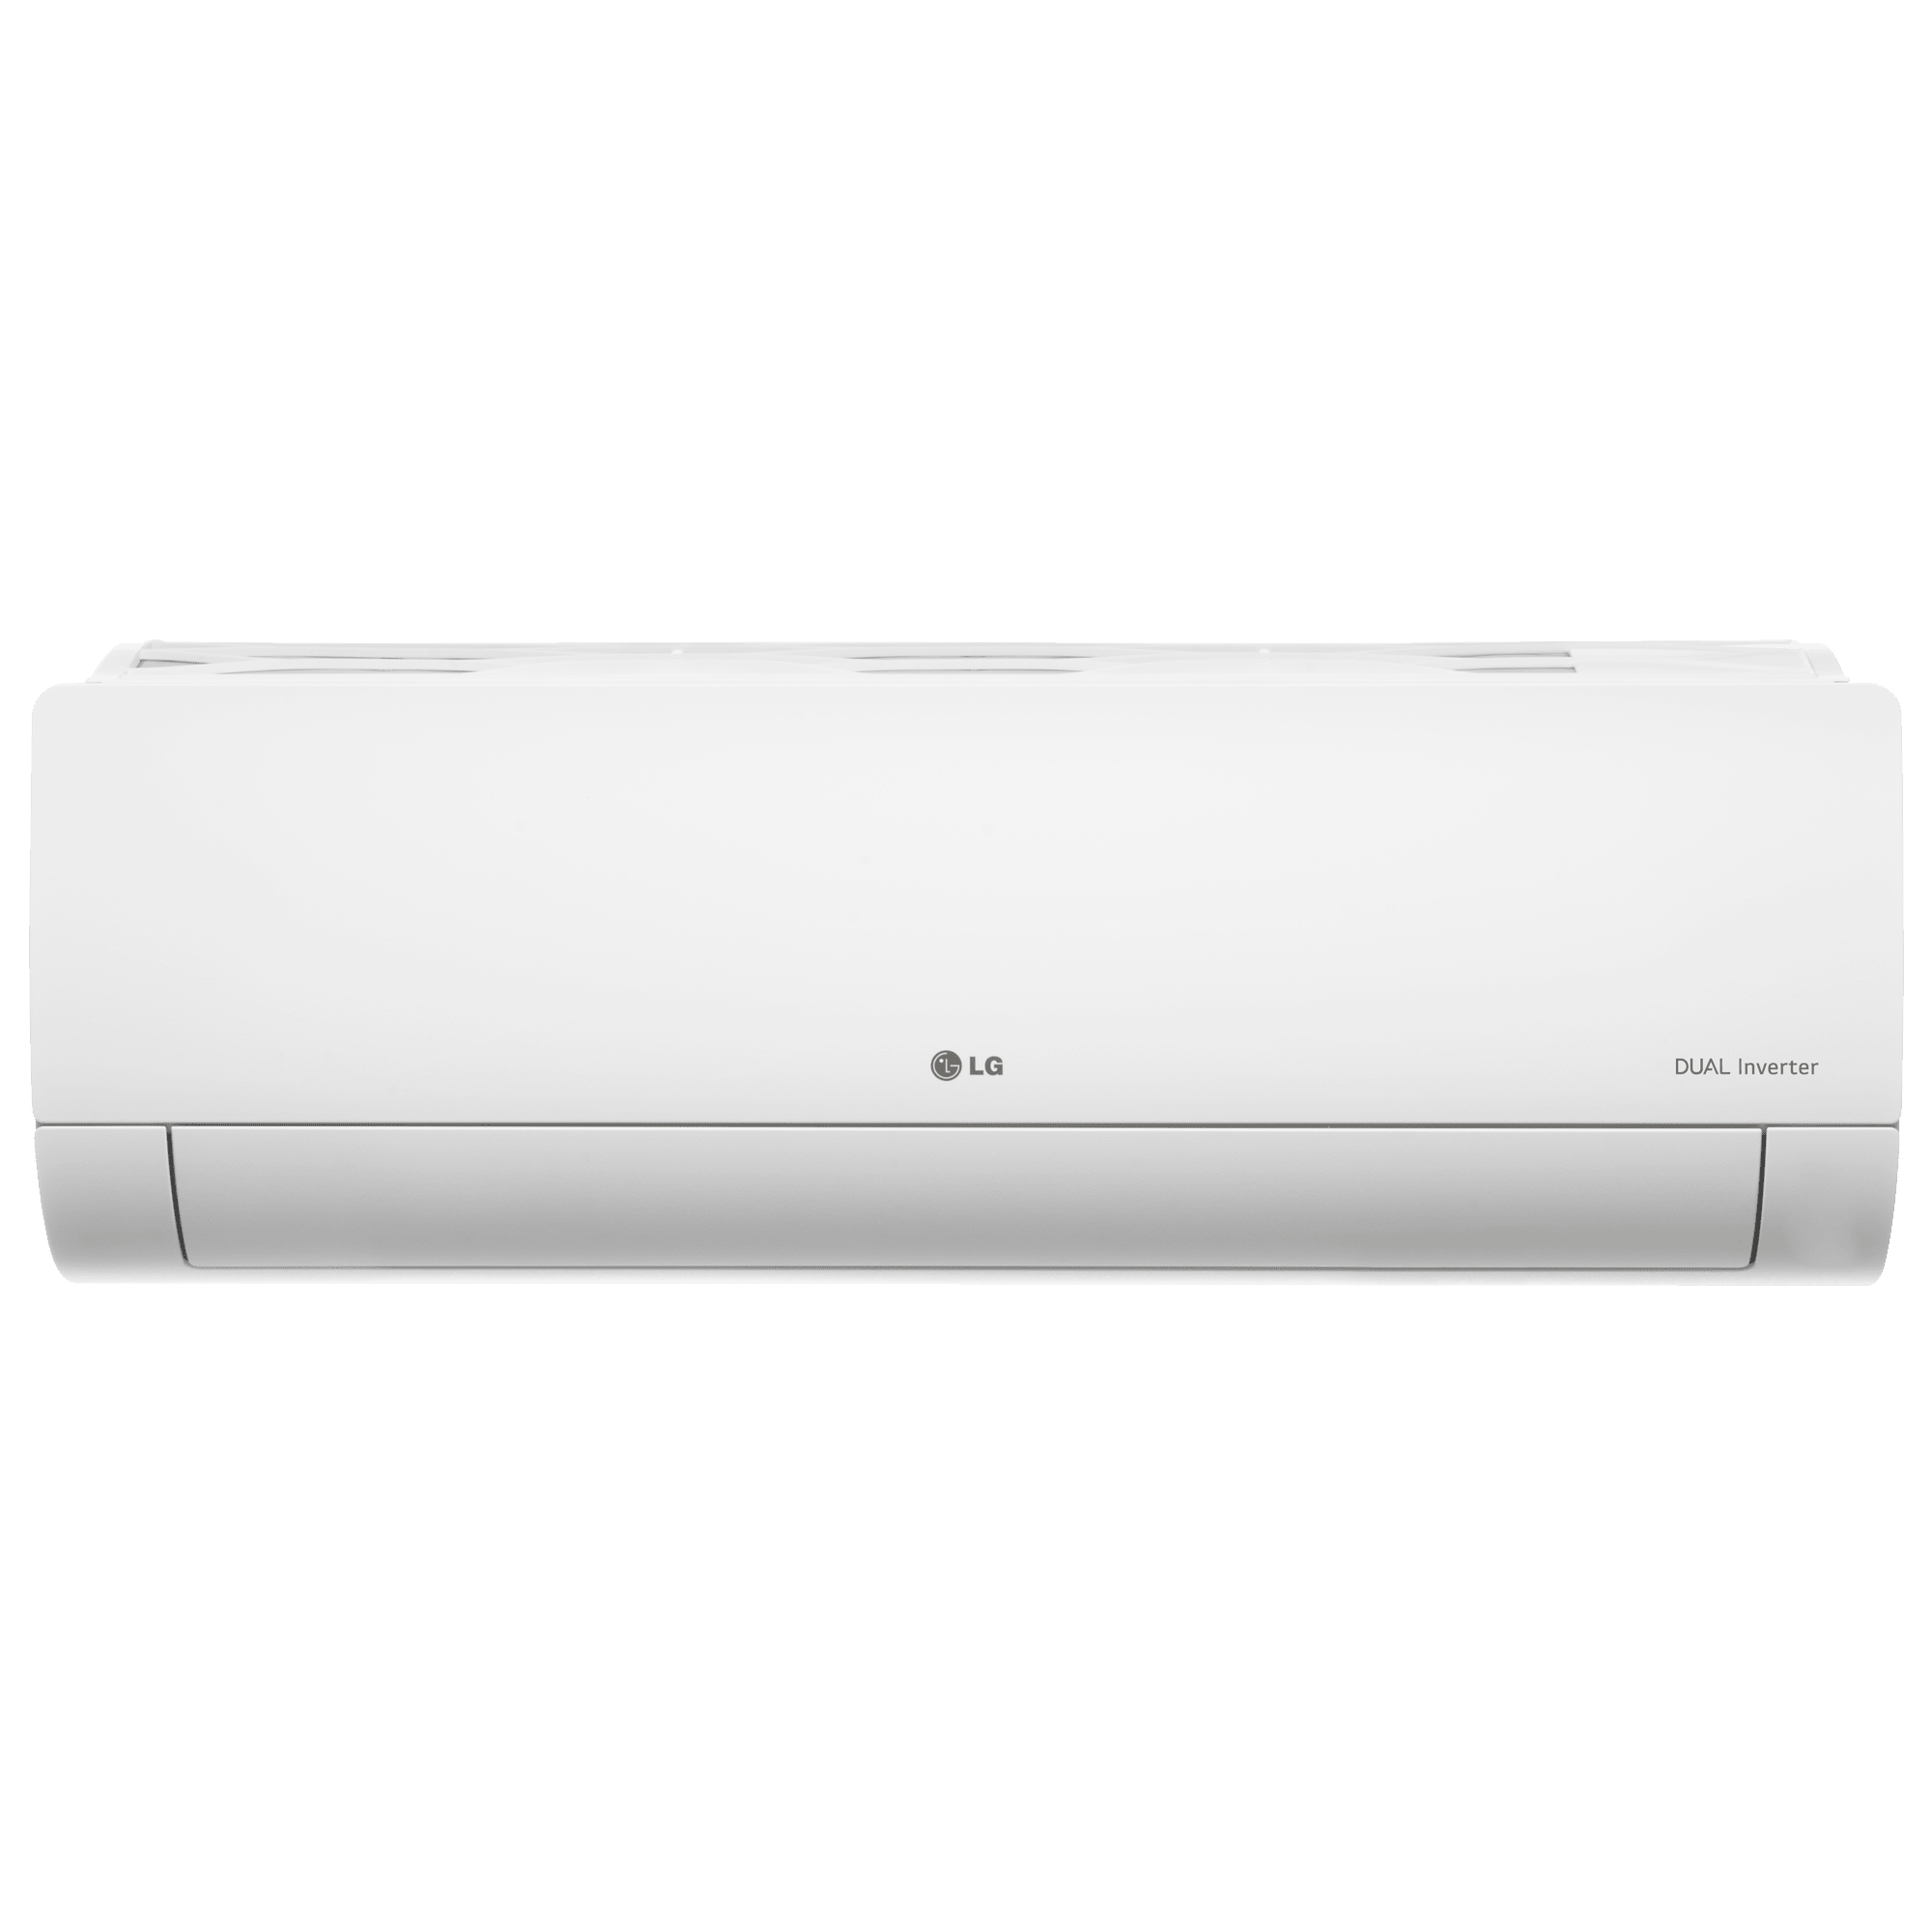 LG 2 Ton 3 Star Inverter Split AC (Copper Condenser, MS-Q24HNXA, White)